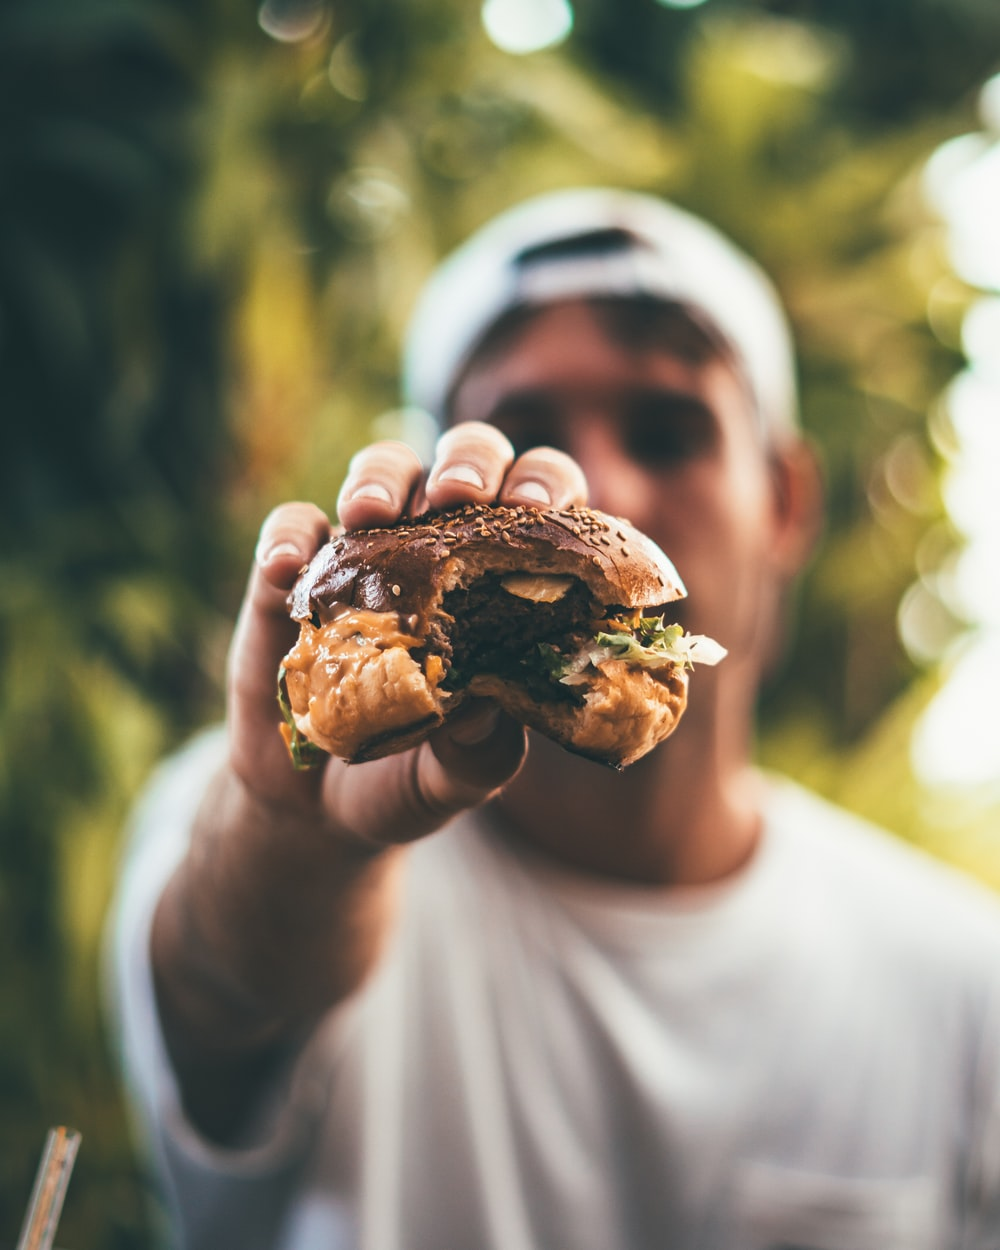 selective focus photography of man holding eaten burger